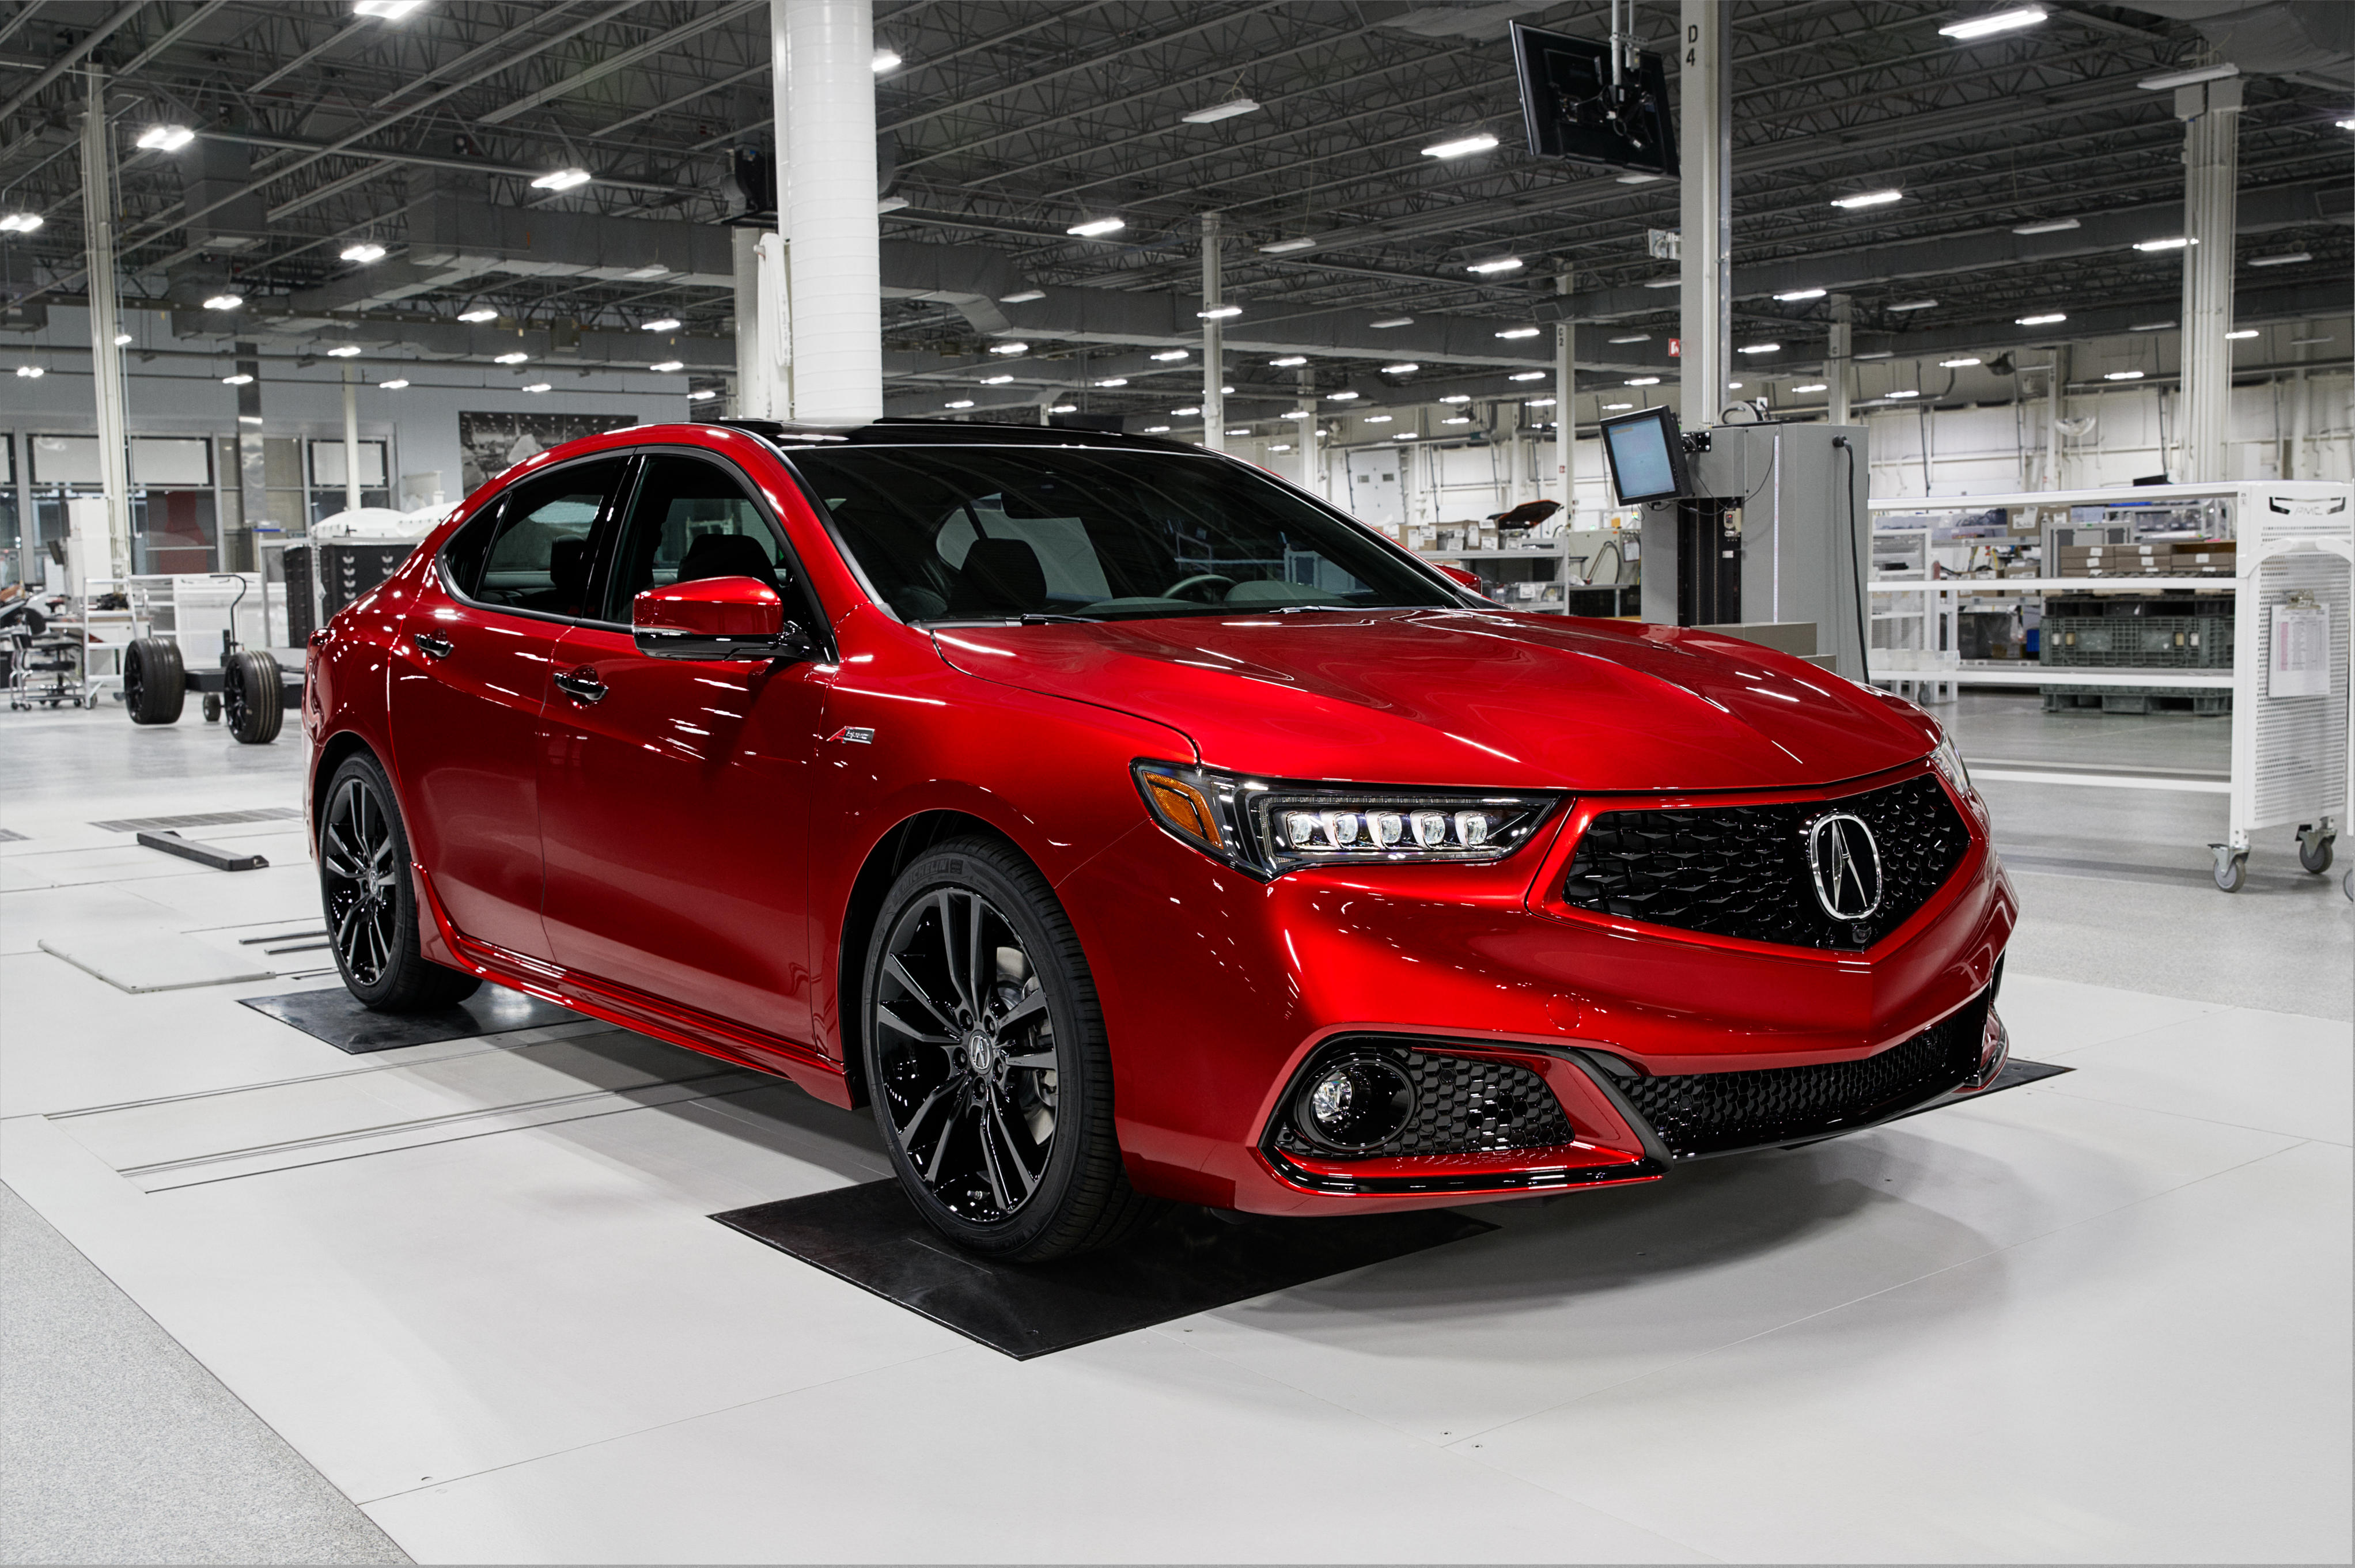 2020-acura-tlx-pmc-edition-1